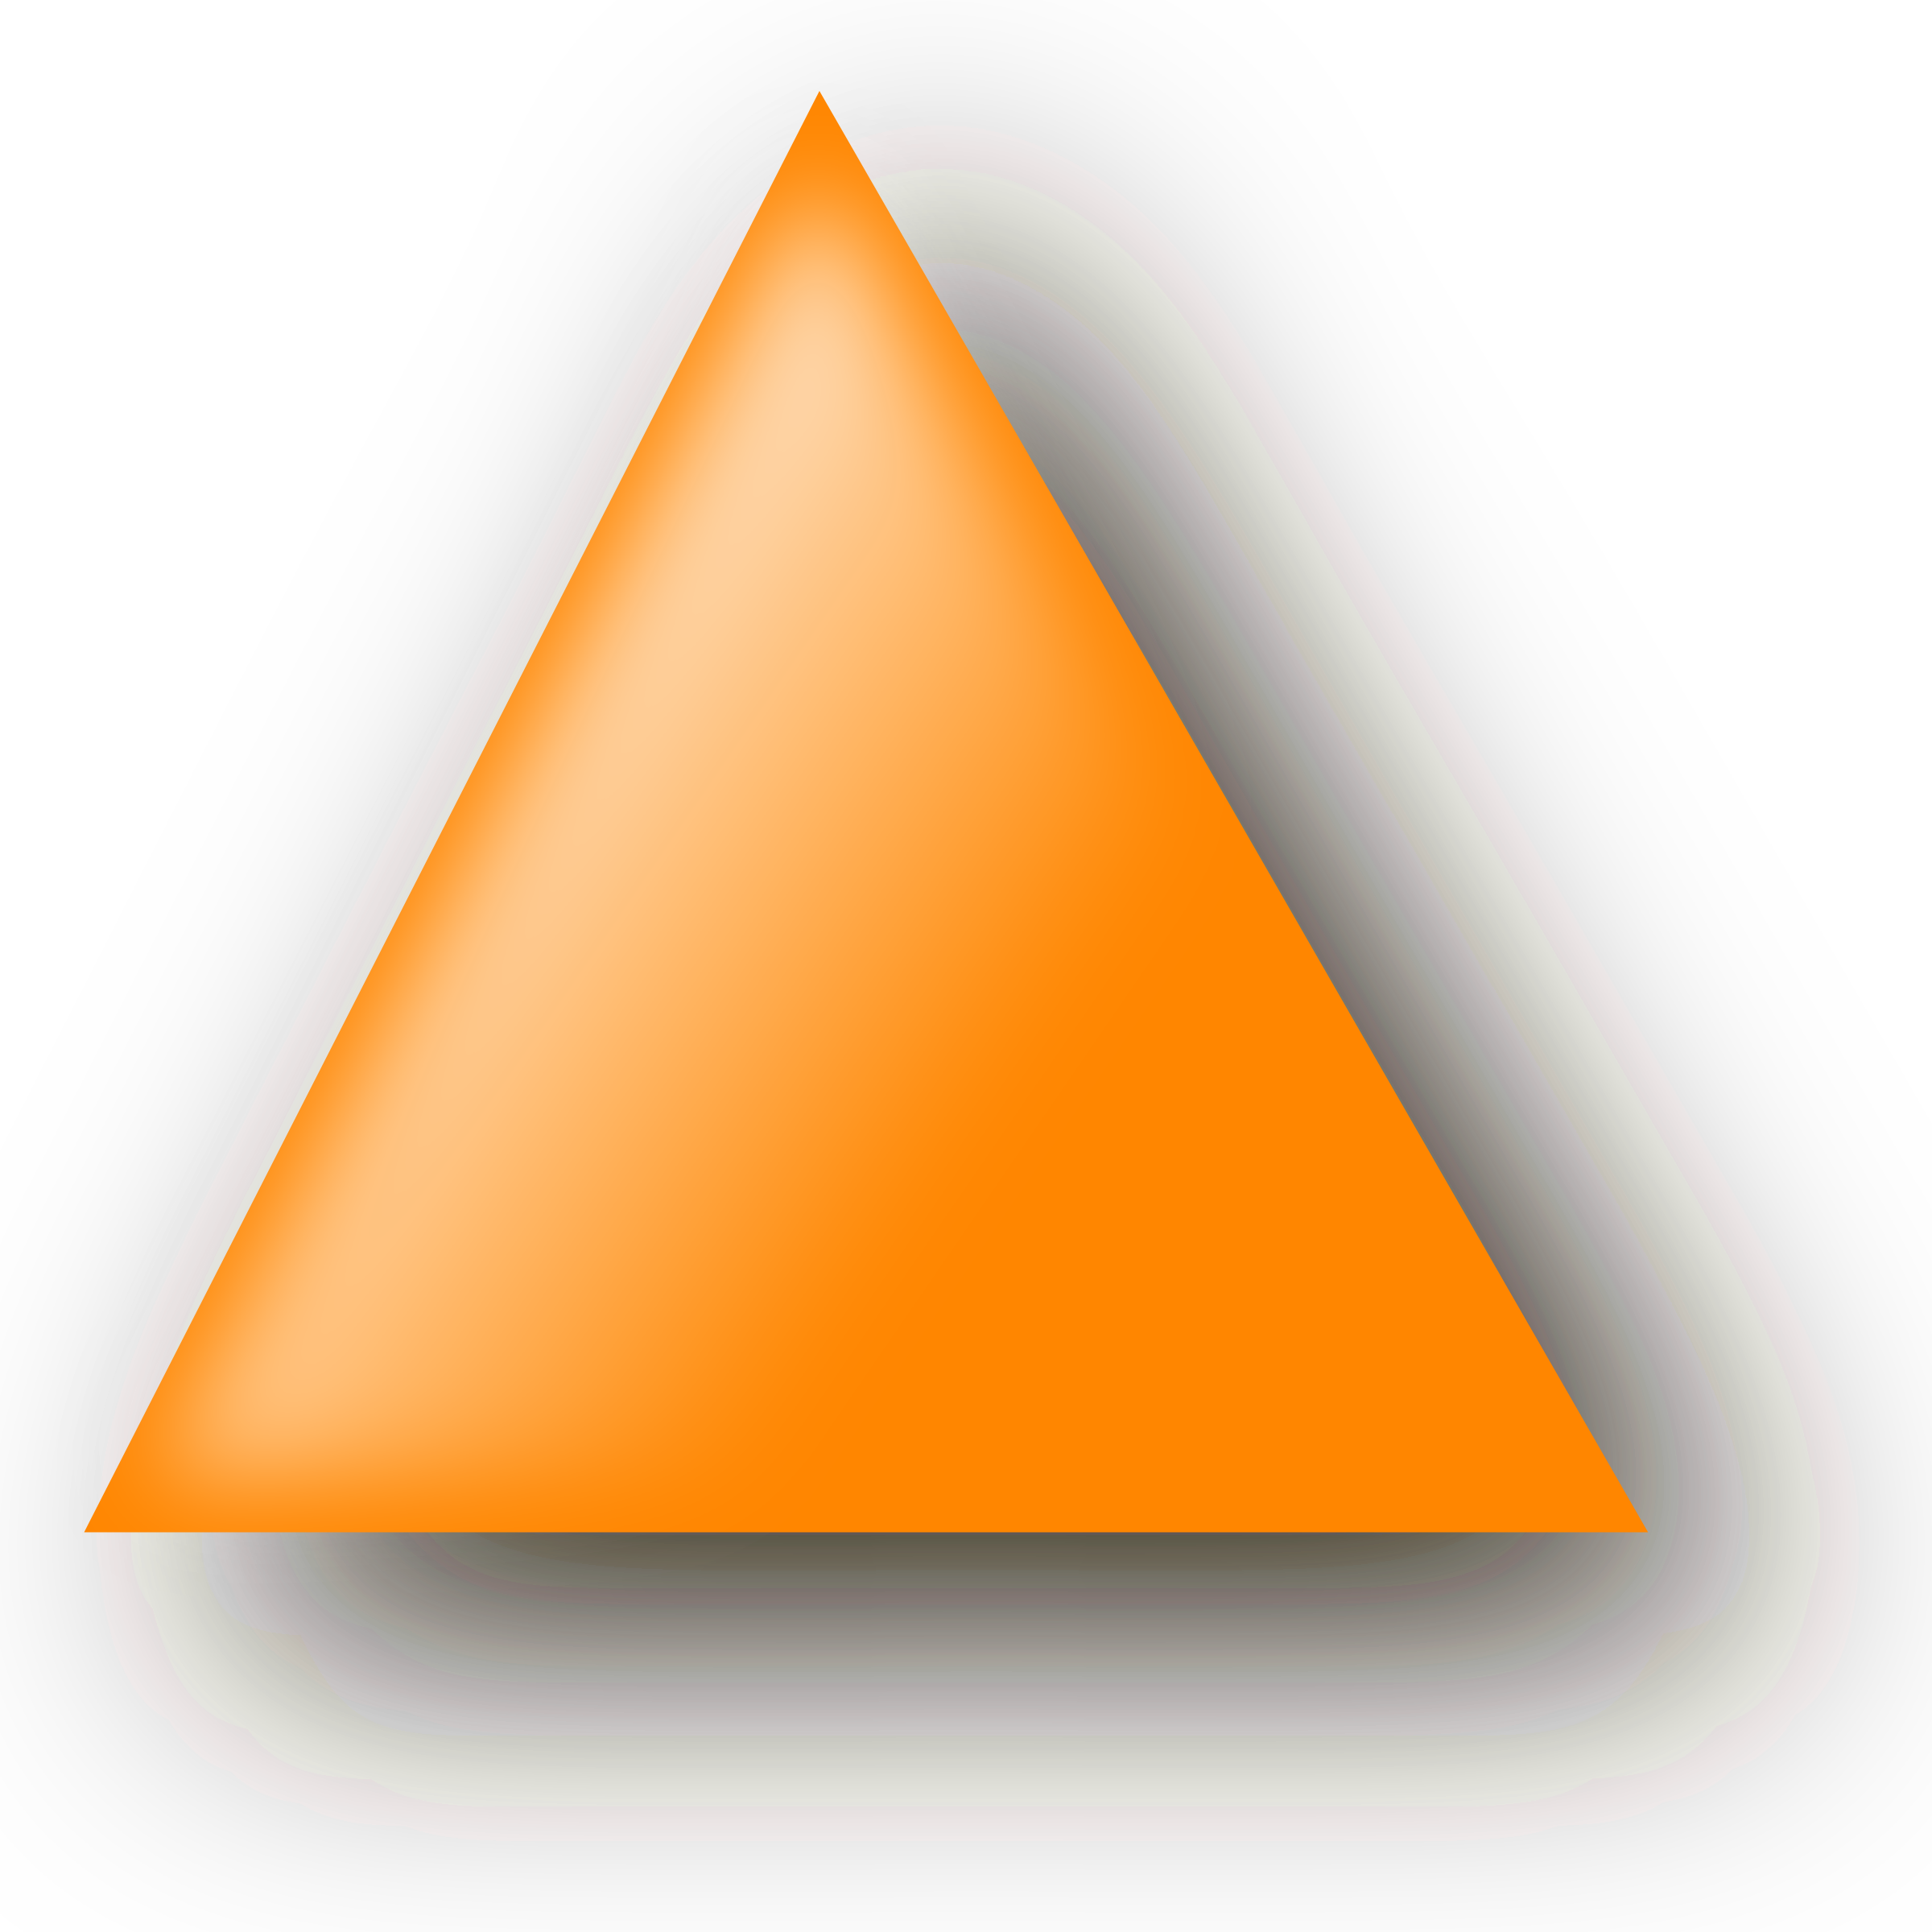 orange triangle by nlyl